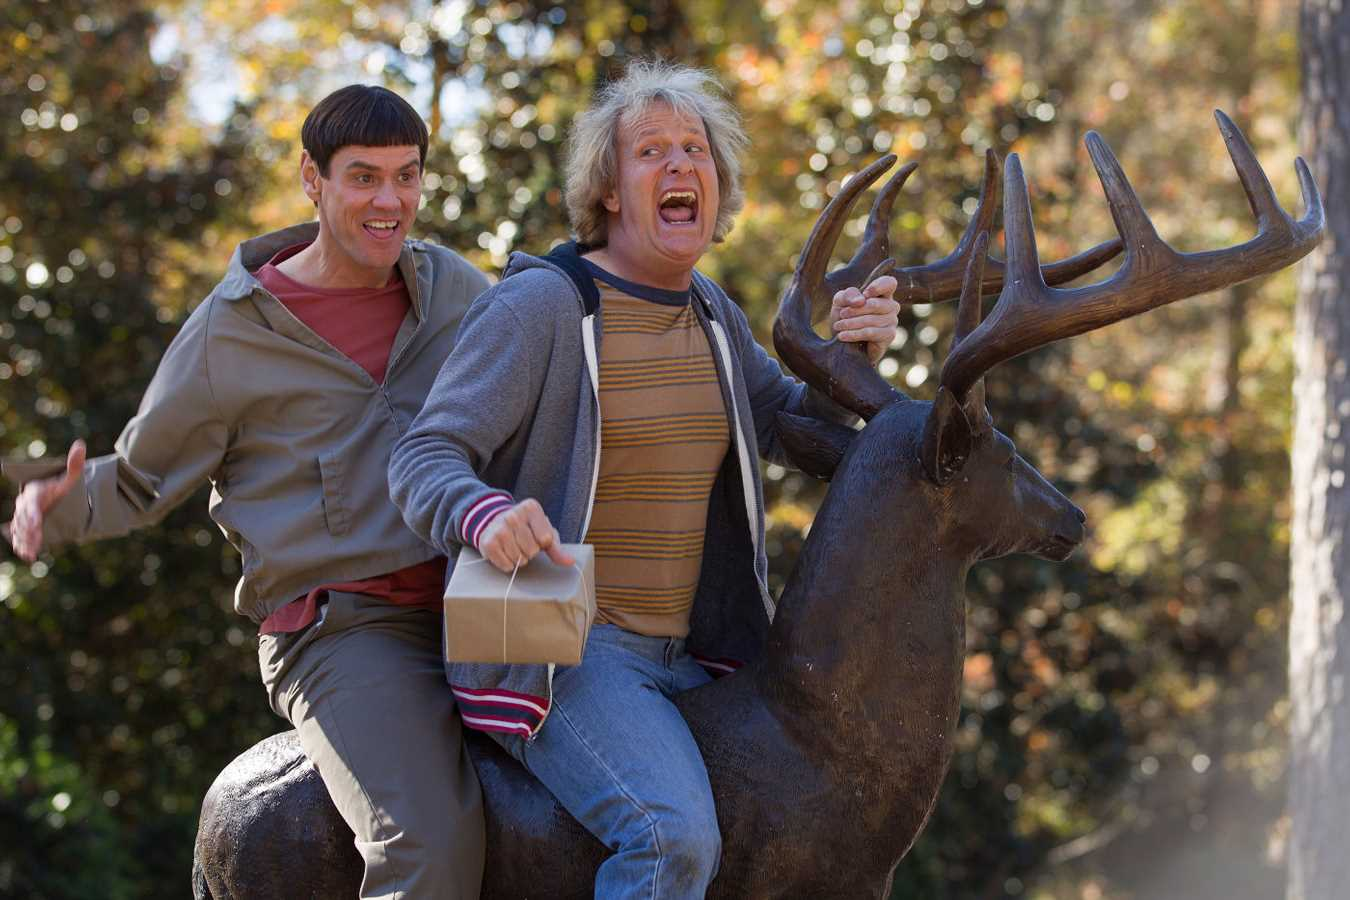 Jeff Daniels Reveals His Agents Didn't Want Him to Make Dumb and Dumber with Jim Carrey